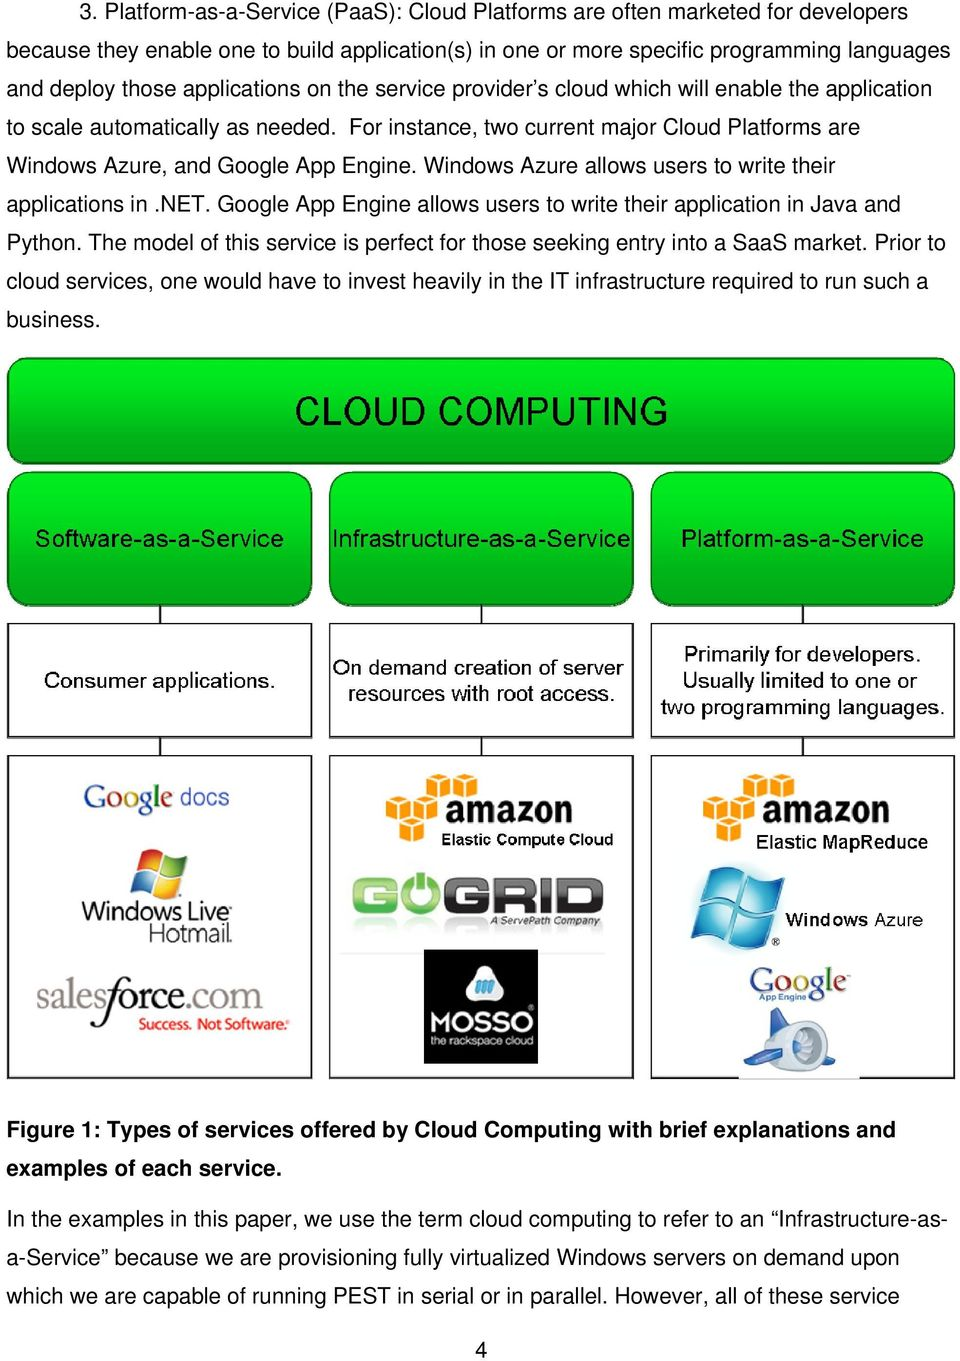 For instance, two current major Cloud Platforms are Windows Azure, and Google App Engine. Windows Azure allows users to write their applications in.net.